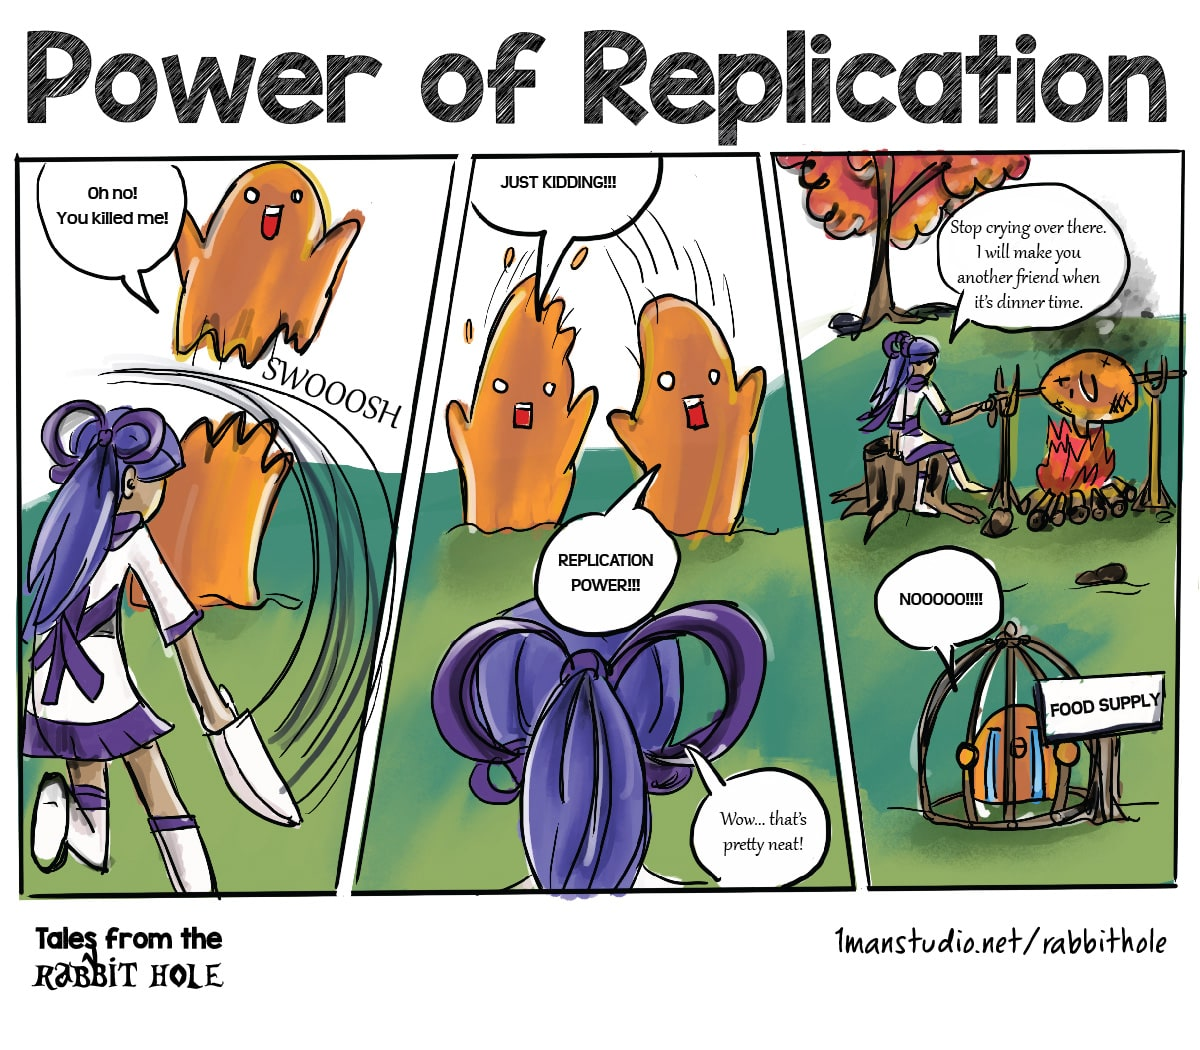 Replication Power - Tales from the Rabbit Hole